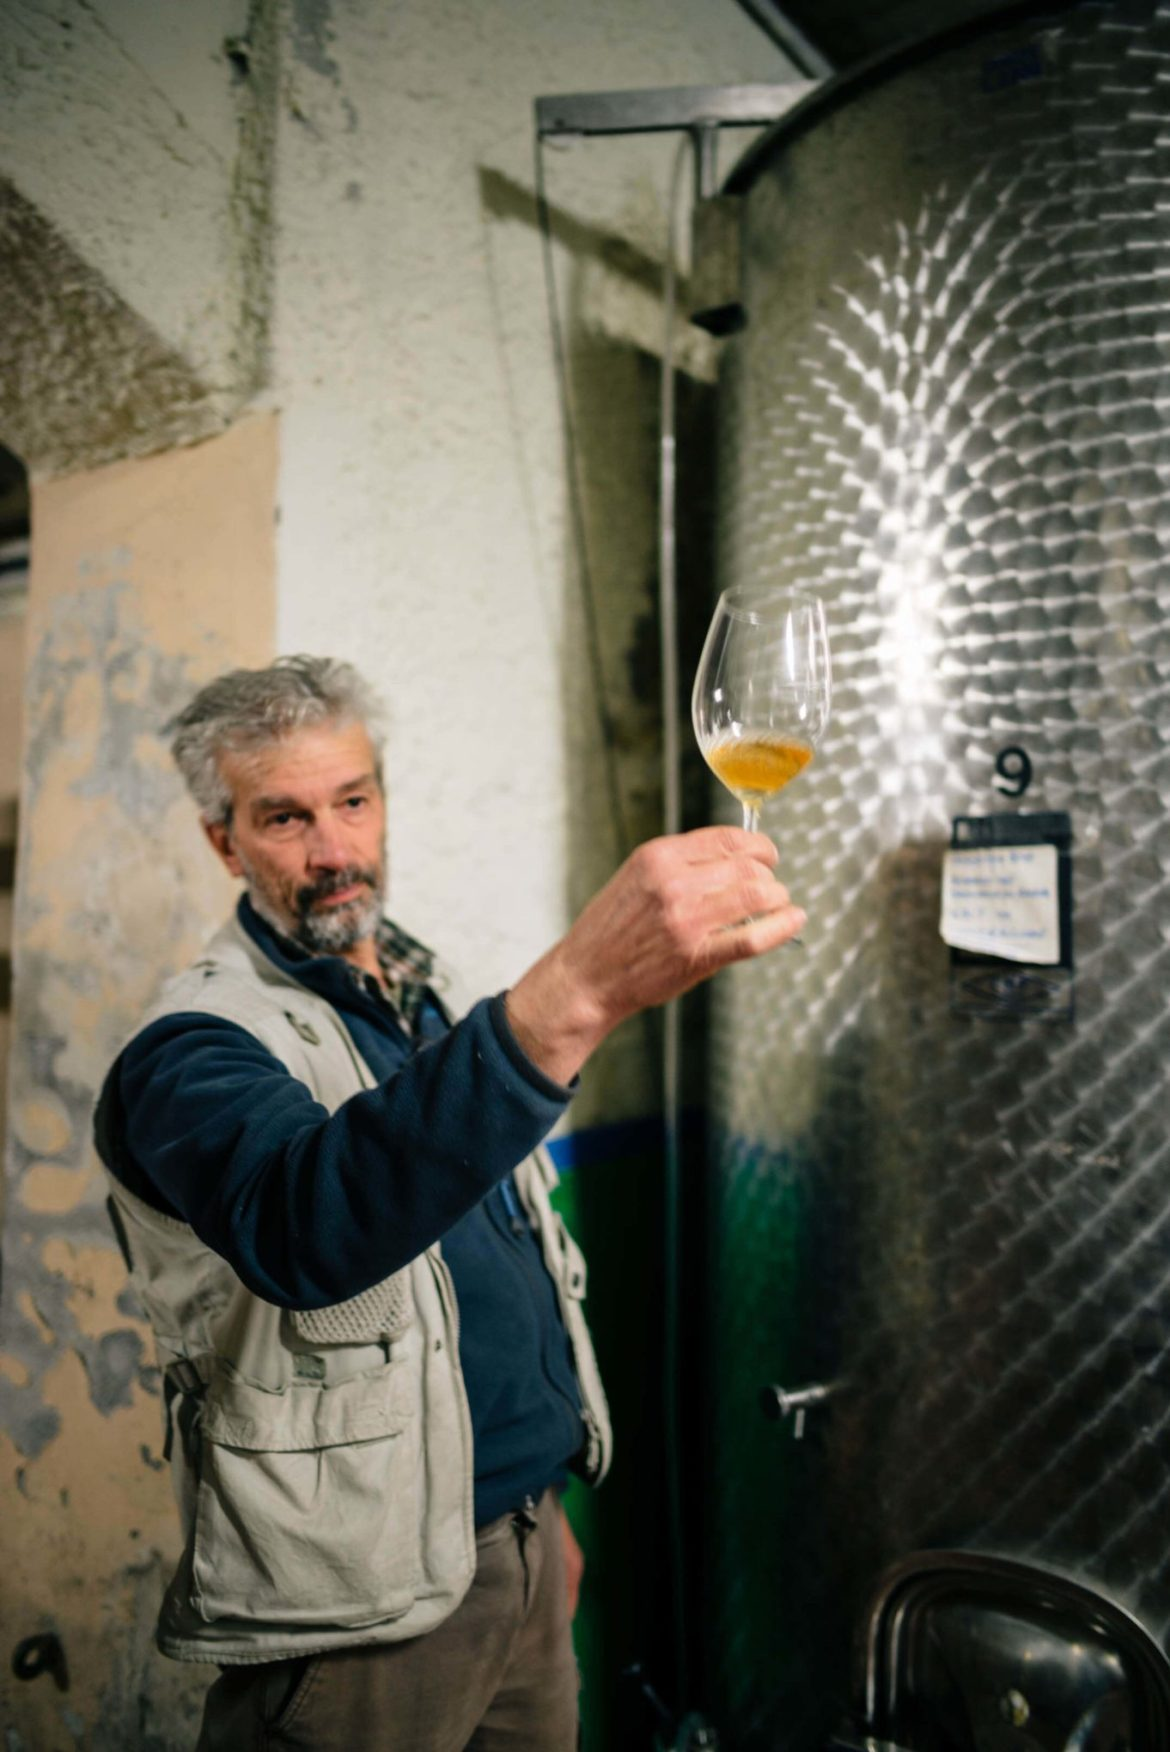 The Taste Edit, culinary photographers, recommends visiting this magical winery in northern Italy. Castello di Stefanago is near the town of Pavia in Lombardy. Winemaker and owner Giacomo Baruffaldi gives us a tour of the winery where they make Baruffaldi natural wines. Giacomo share the wine from steel tanks.